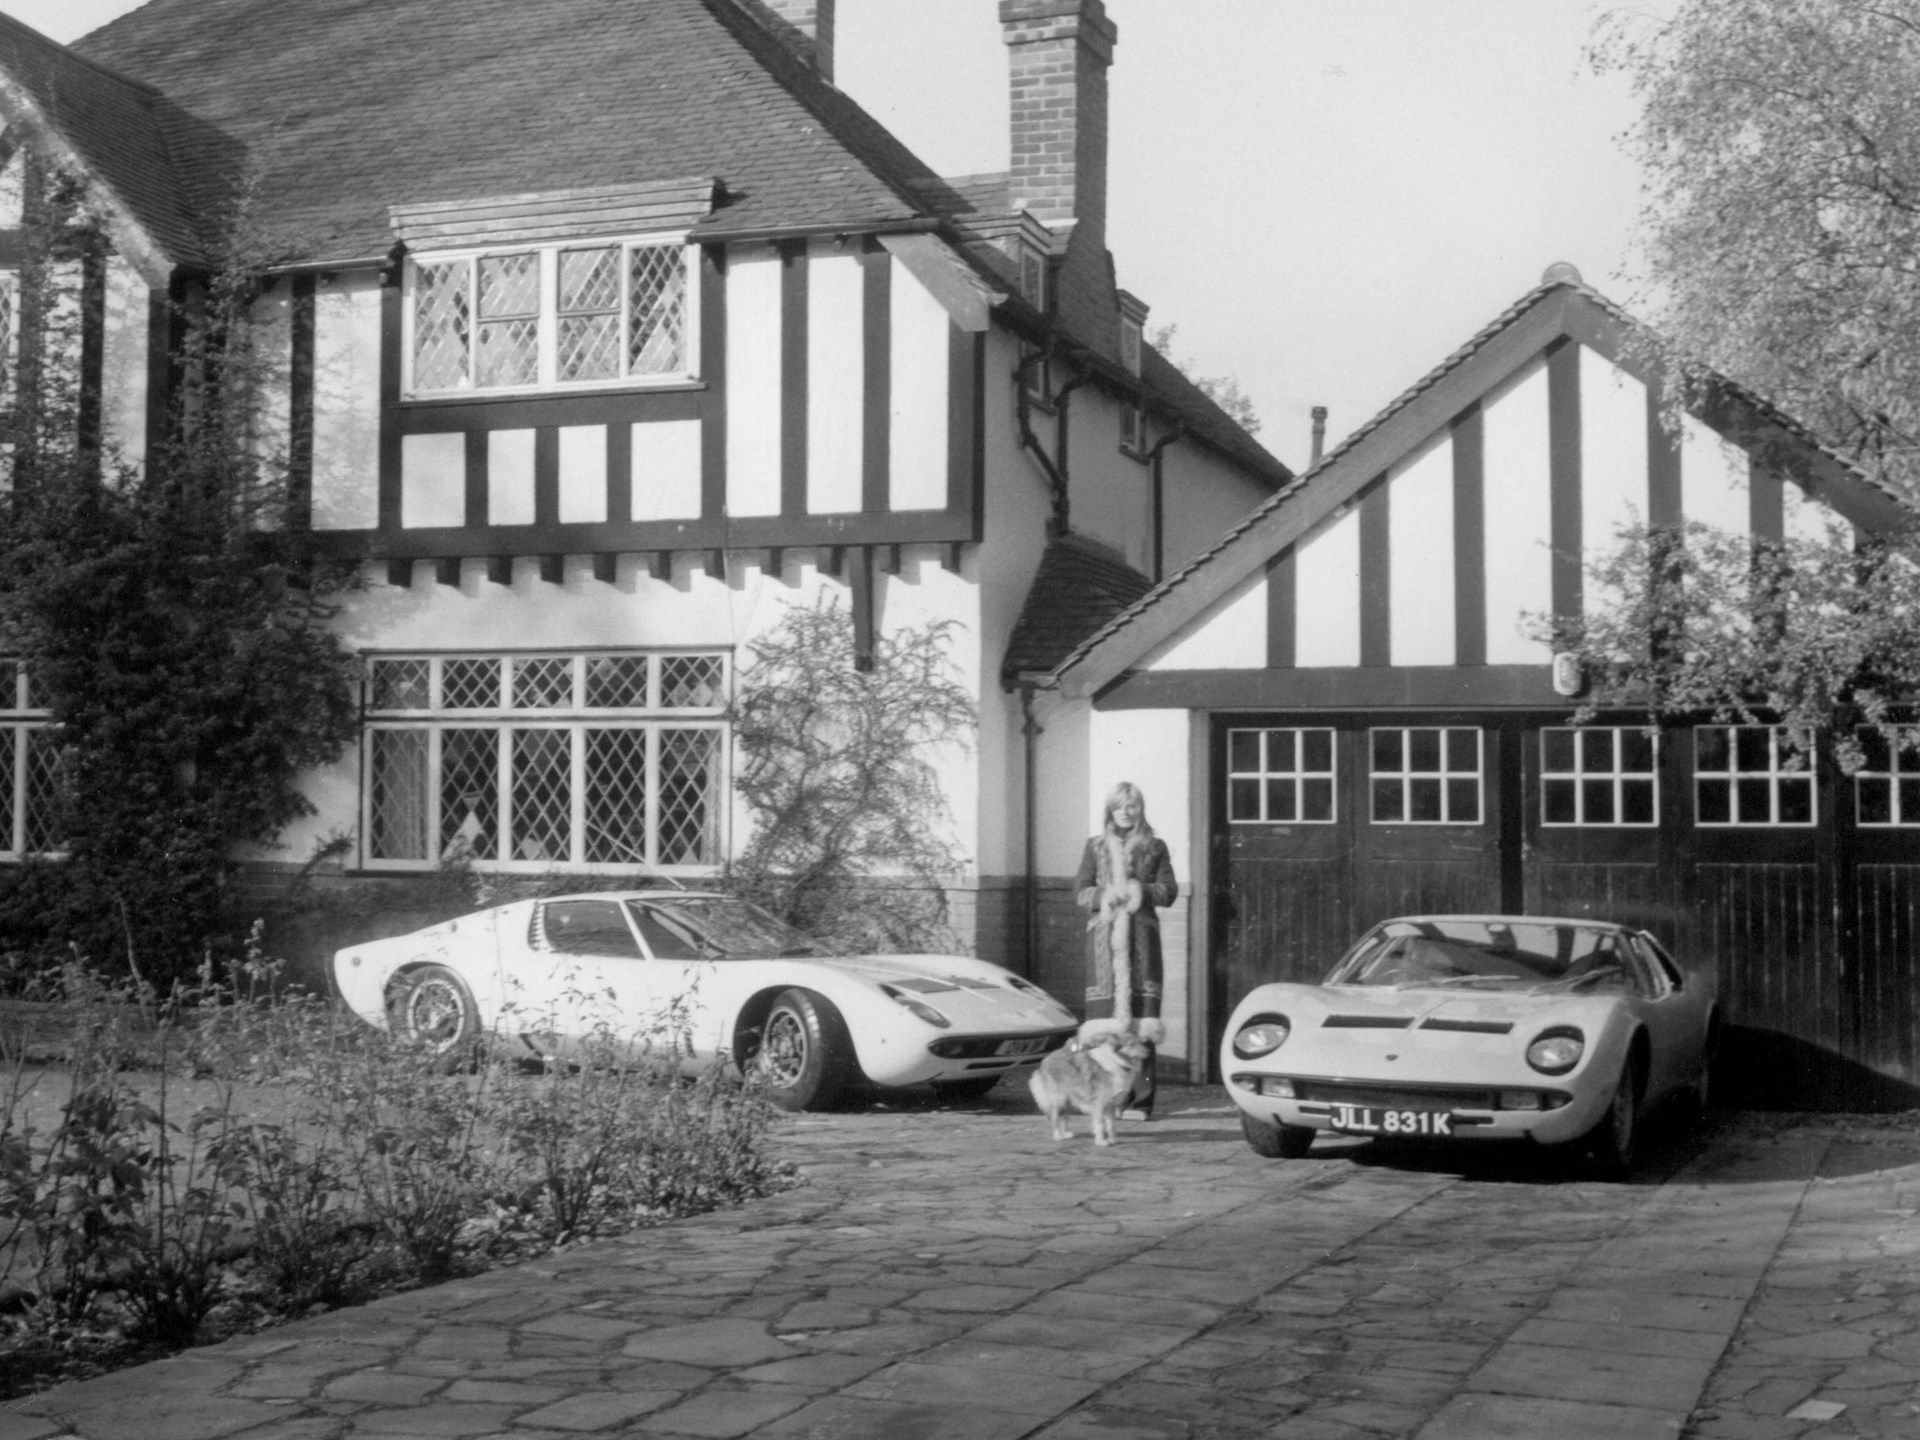 Rod Stewart's girlfriend poses with his Lamborghini Miuras outside his home in Southgate in 1970.